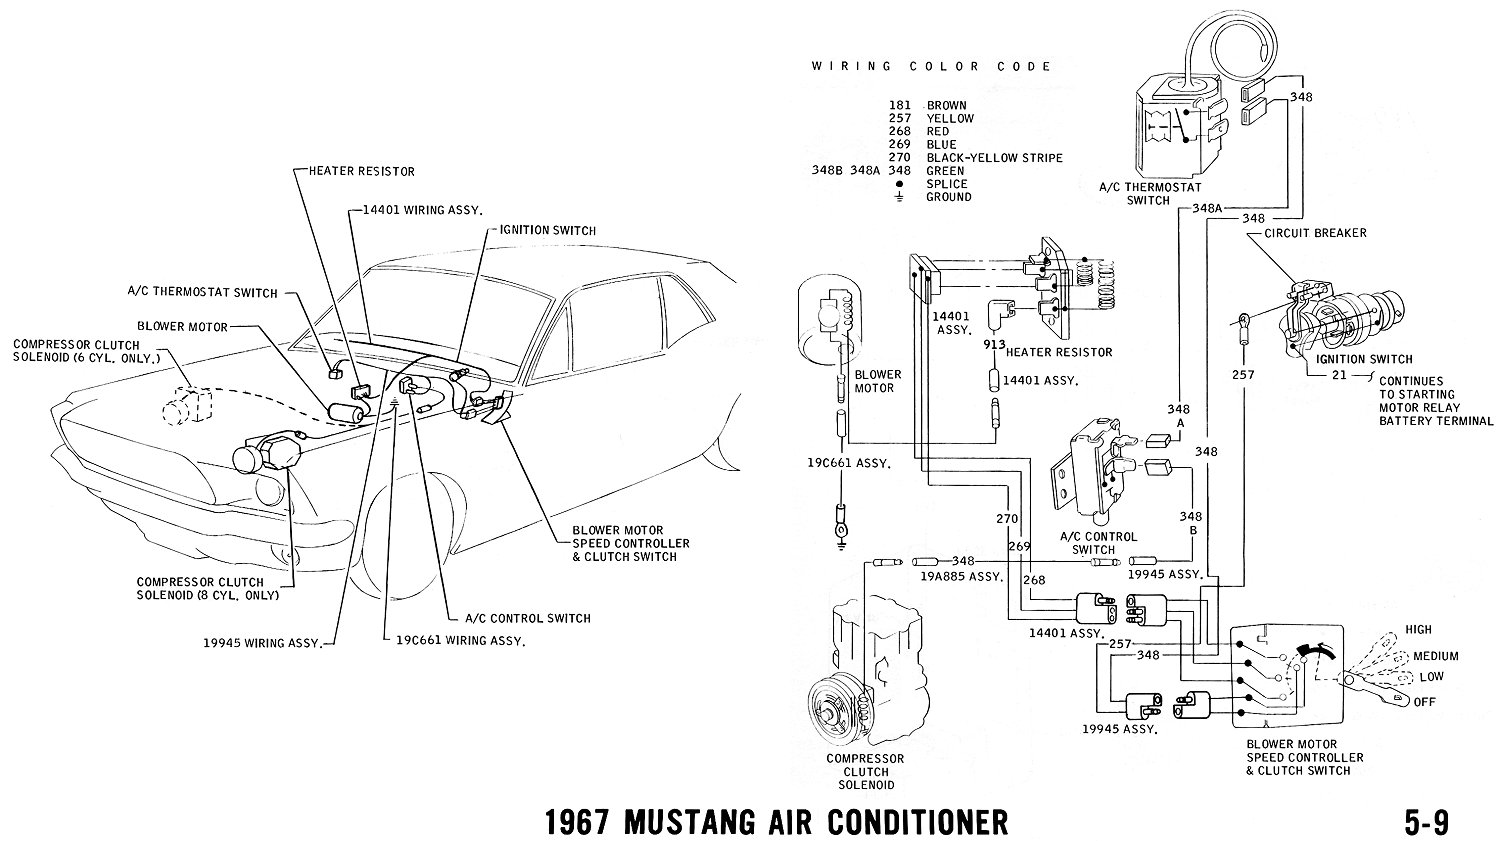 67 mustang wire harness